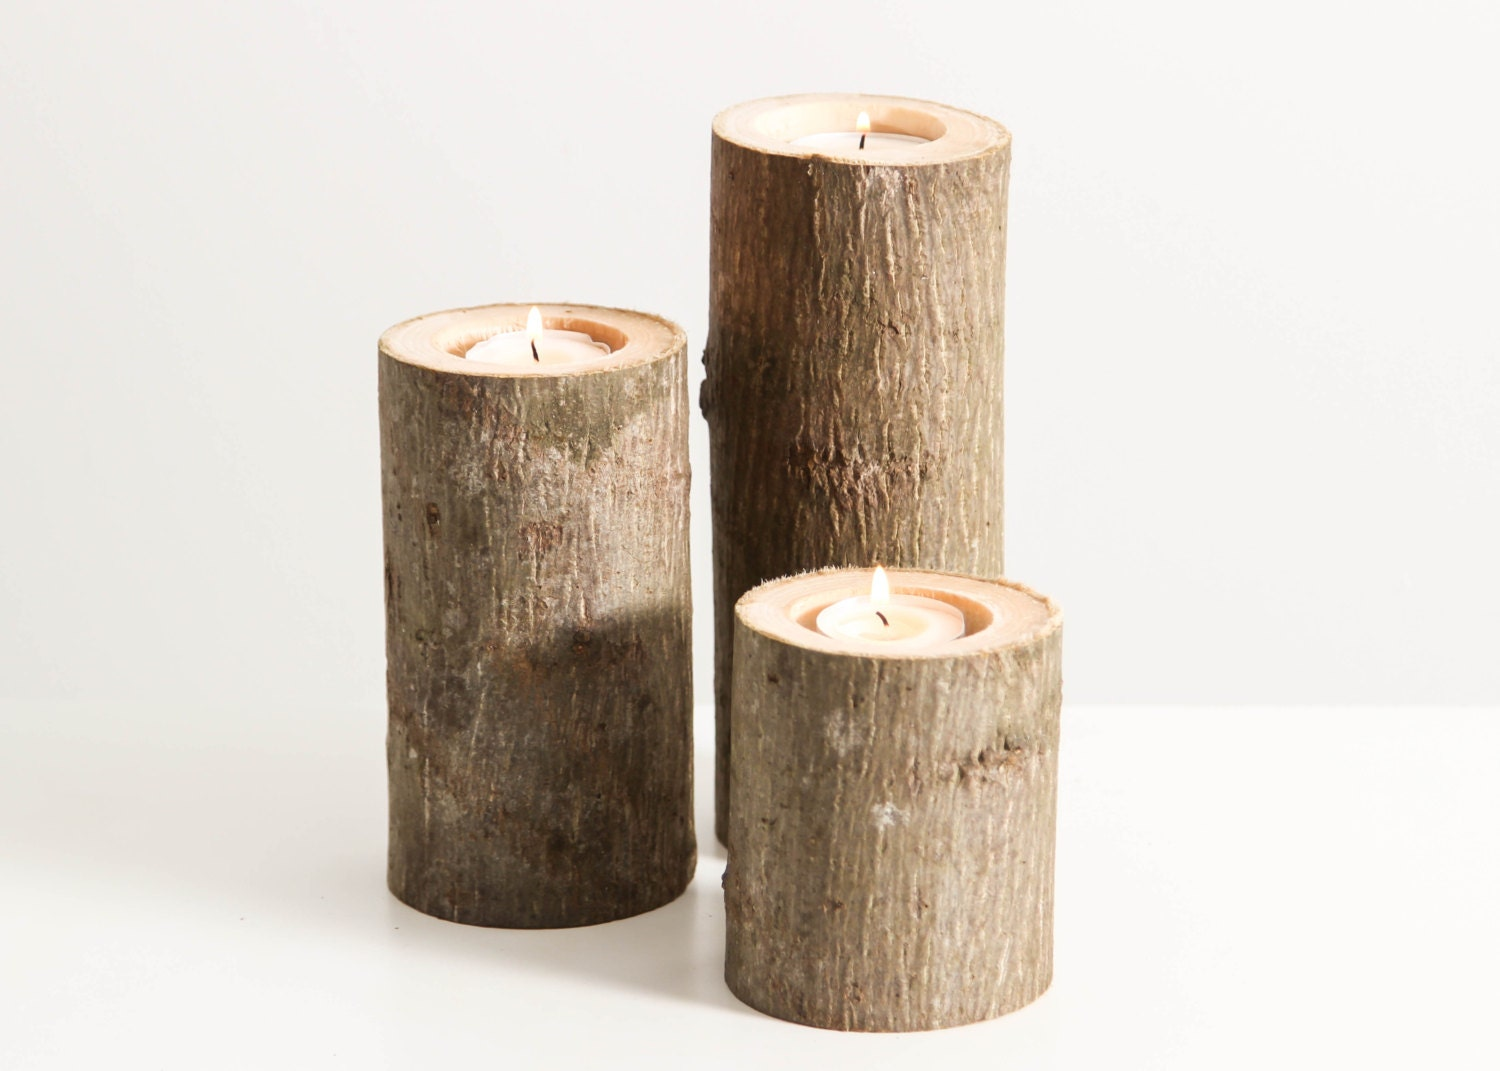 Tree branch candle holders set of 3 heights rustic wood Wood candle holders